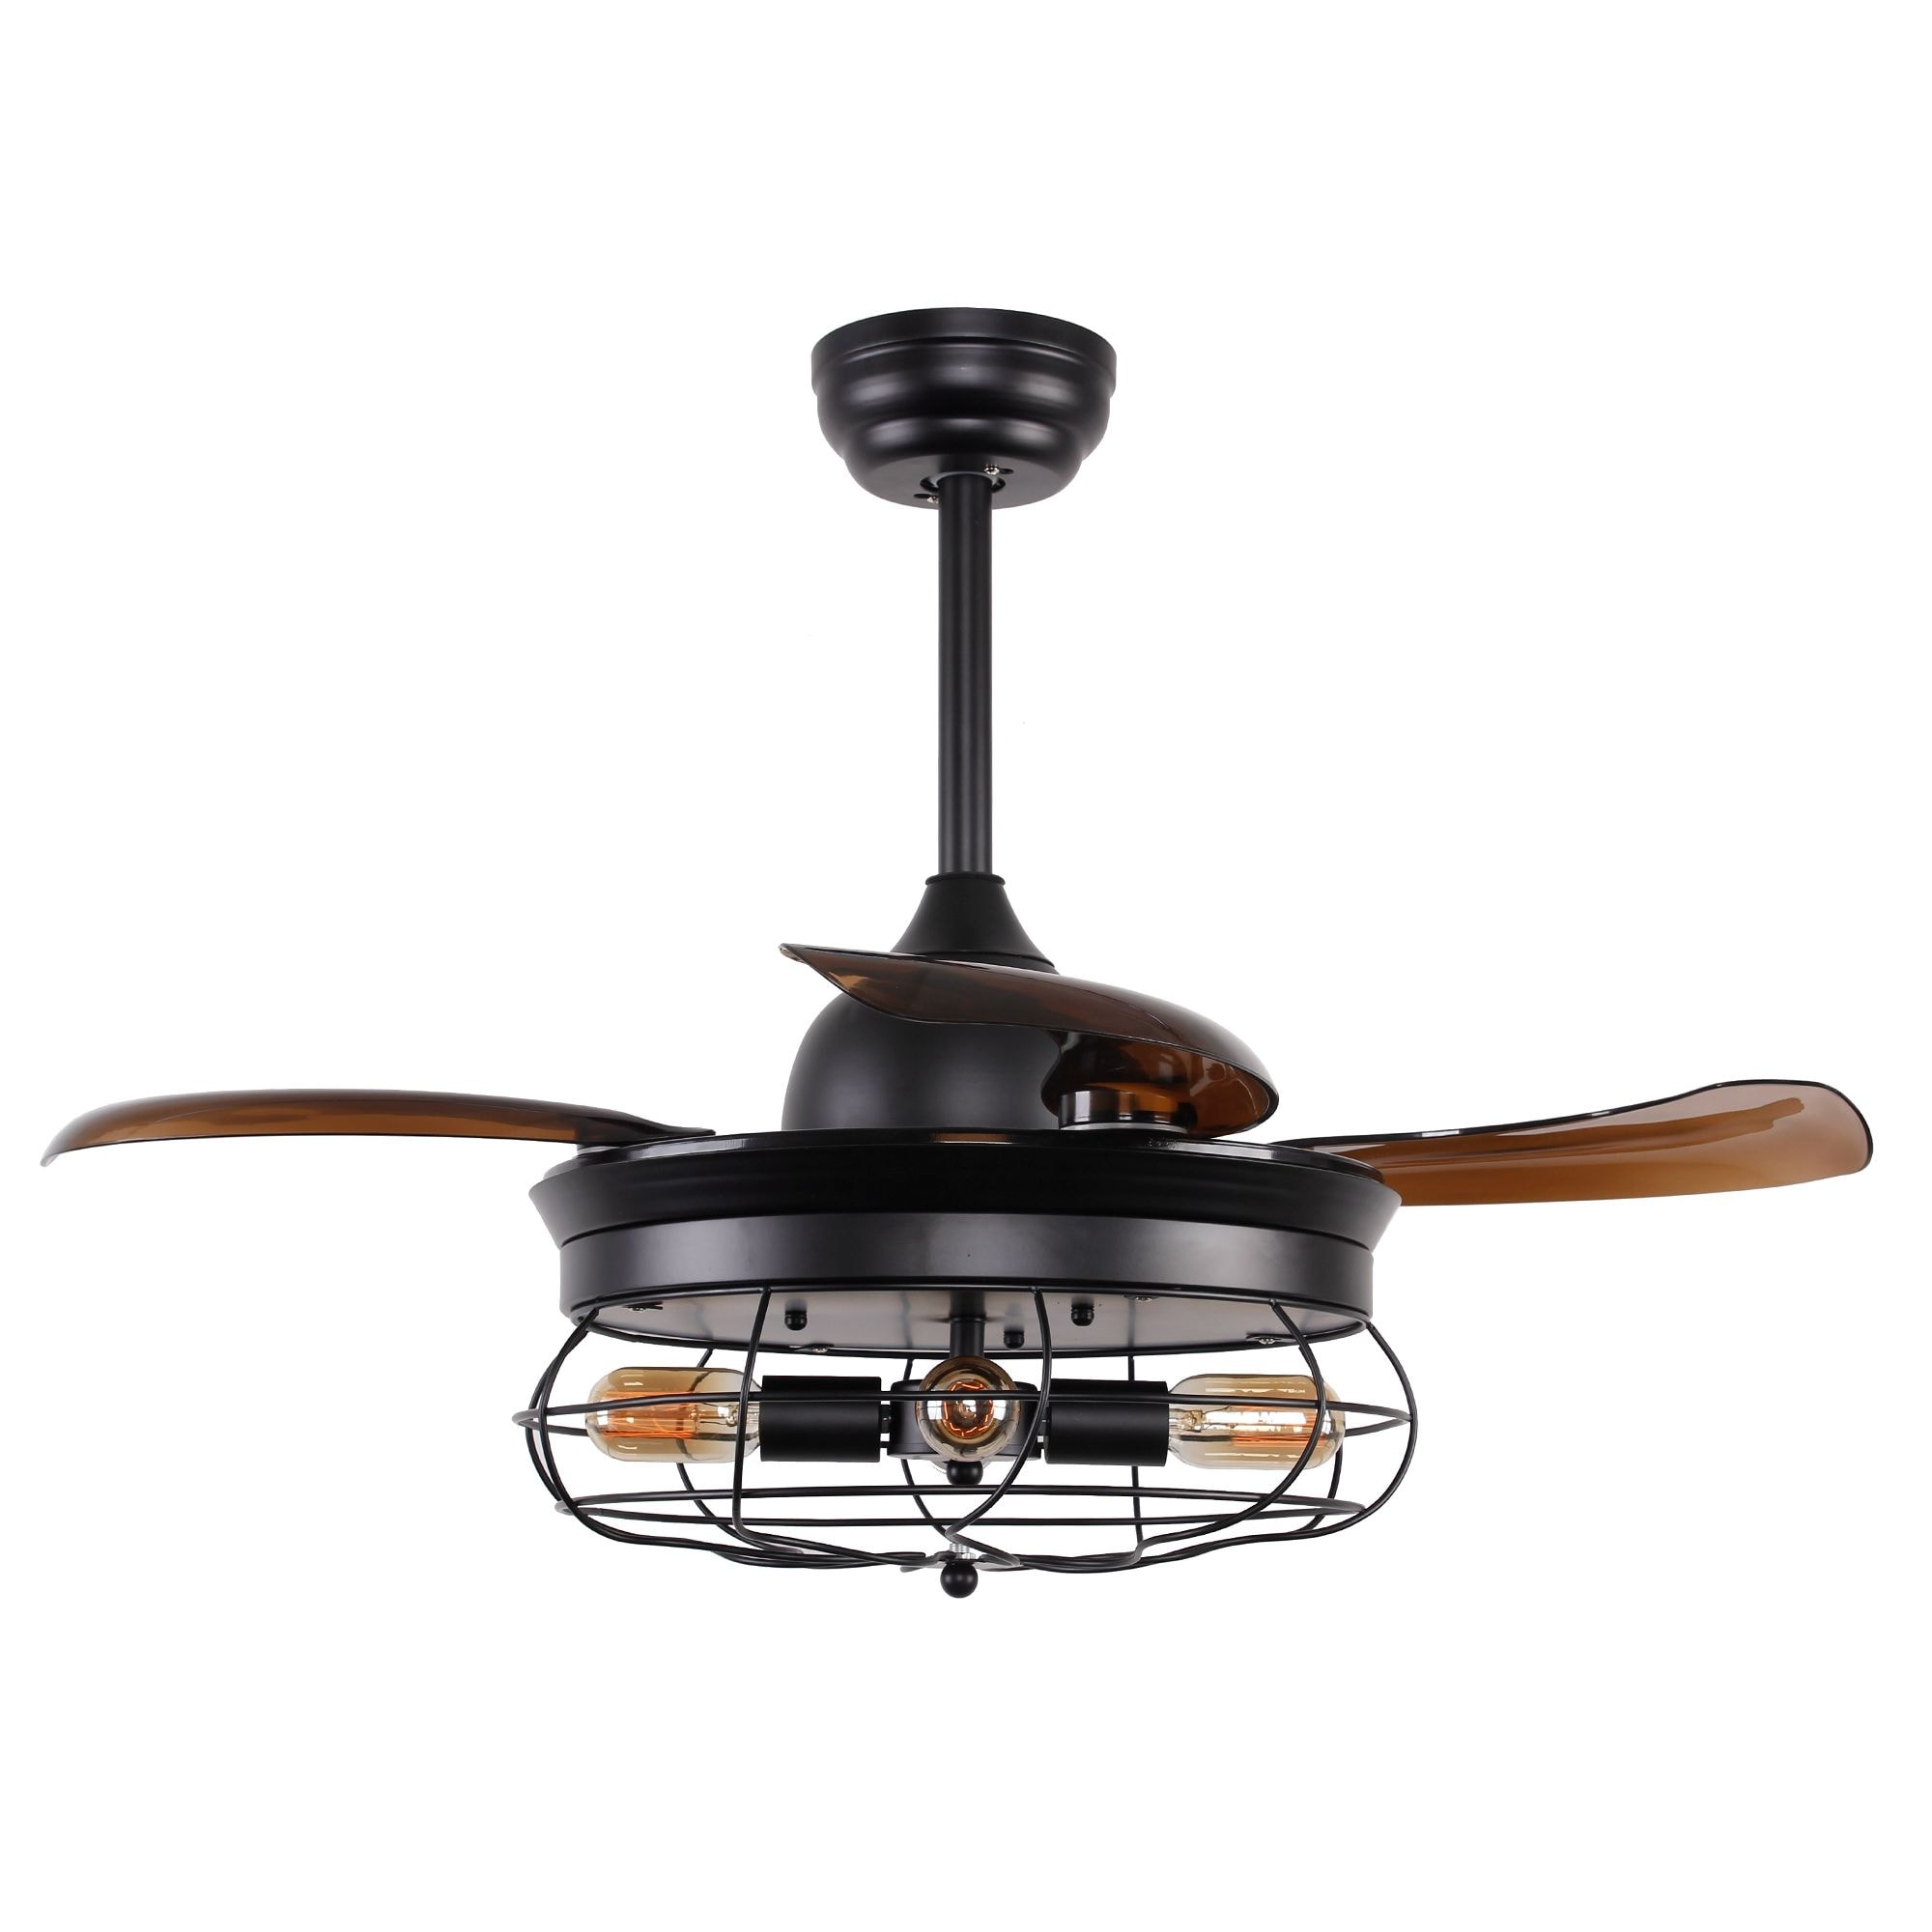 Industrial Ceiling Fans Find Great Ceiling Fans Accessories